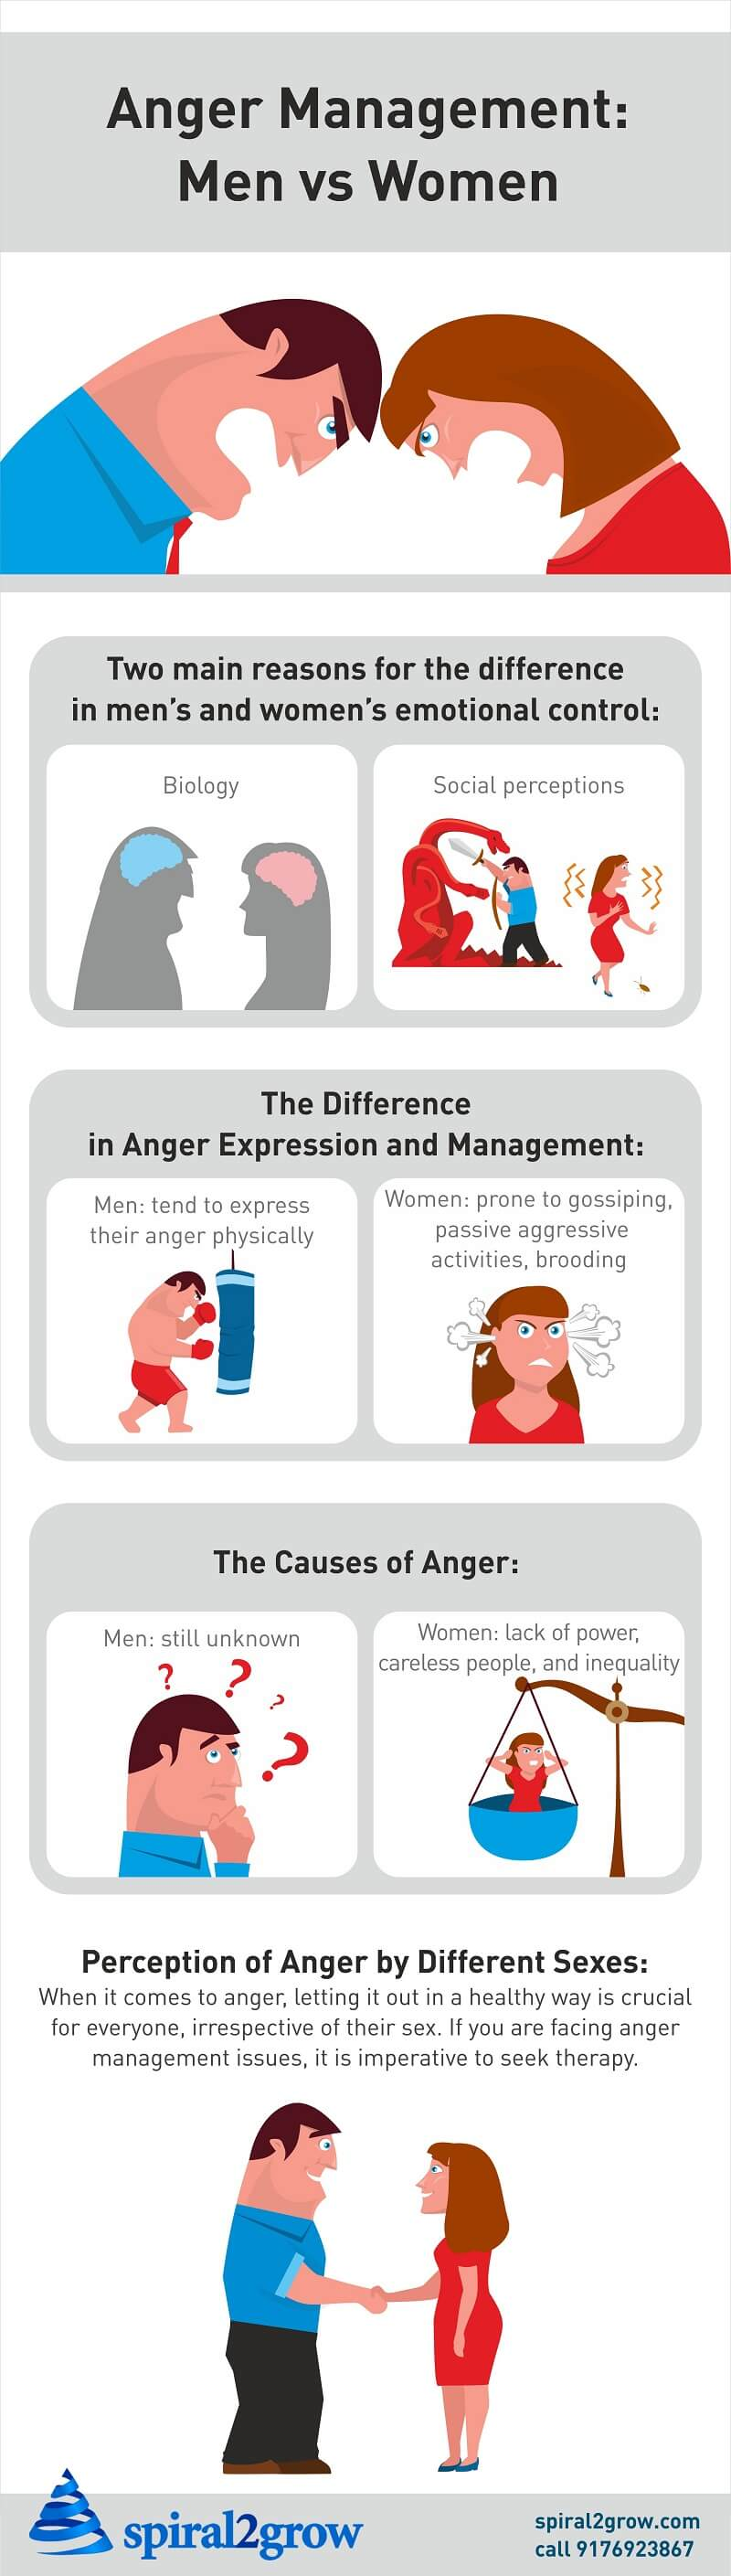 Anger Management in Men and Women: Is There Any Difference